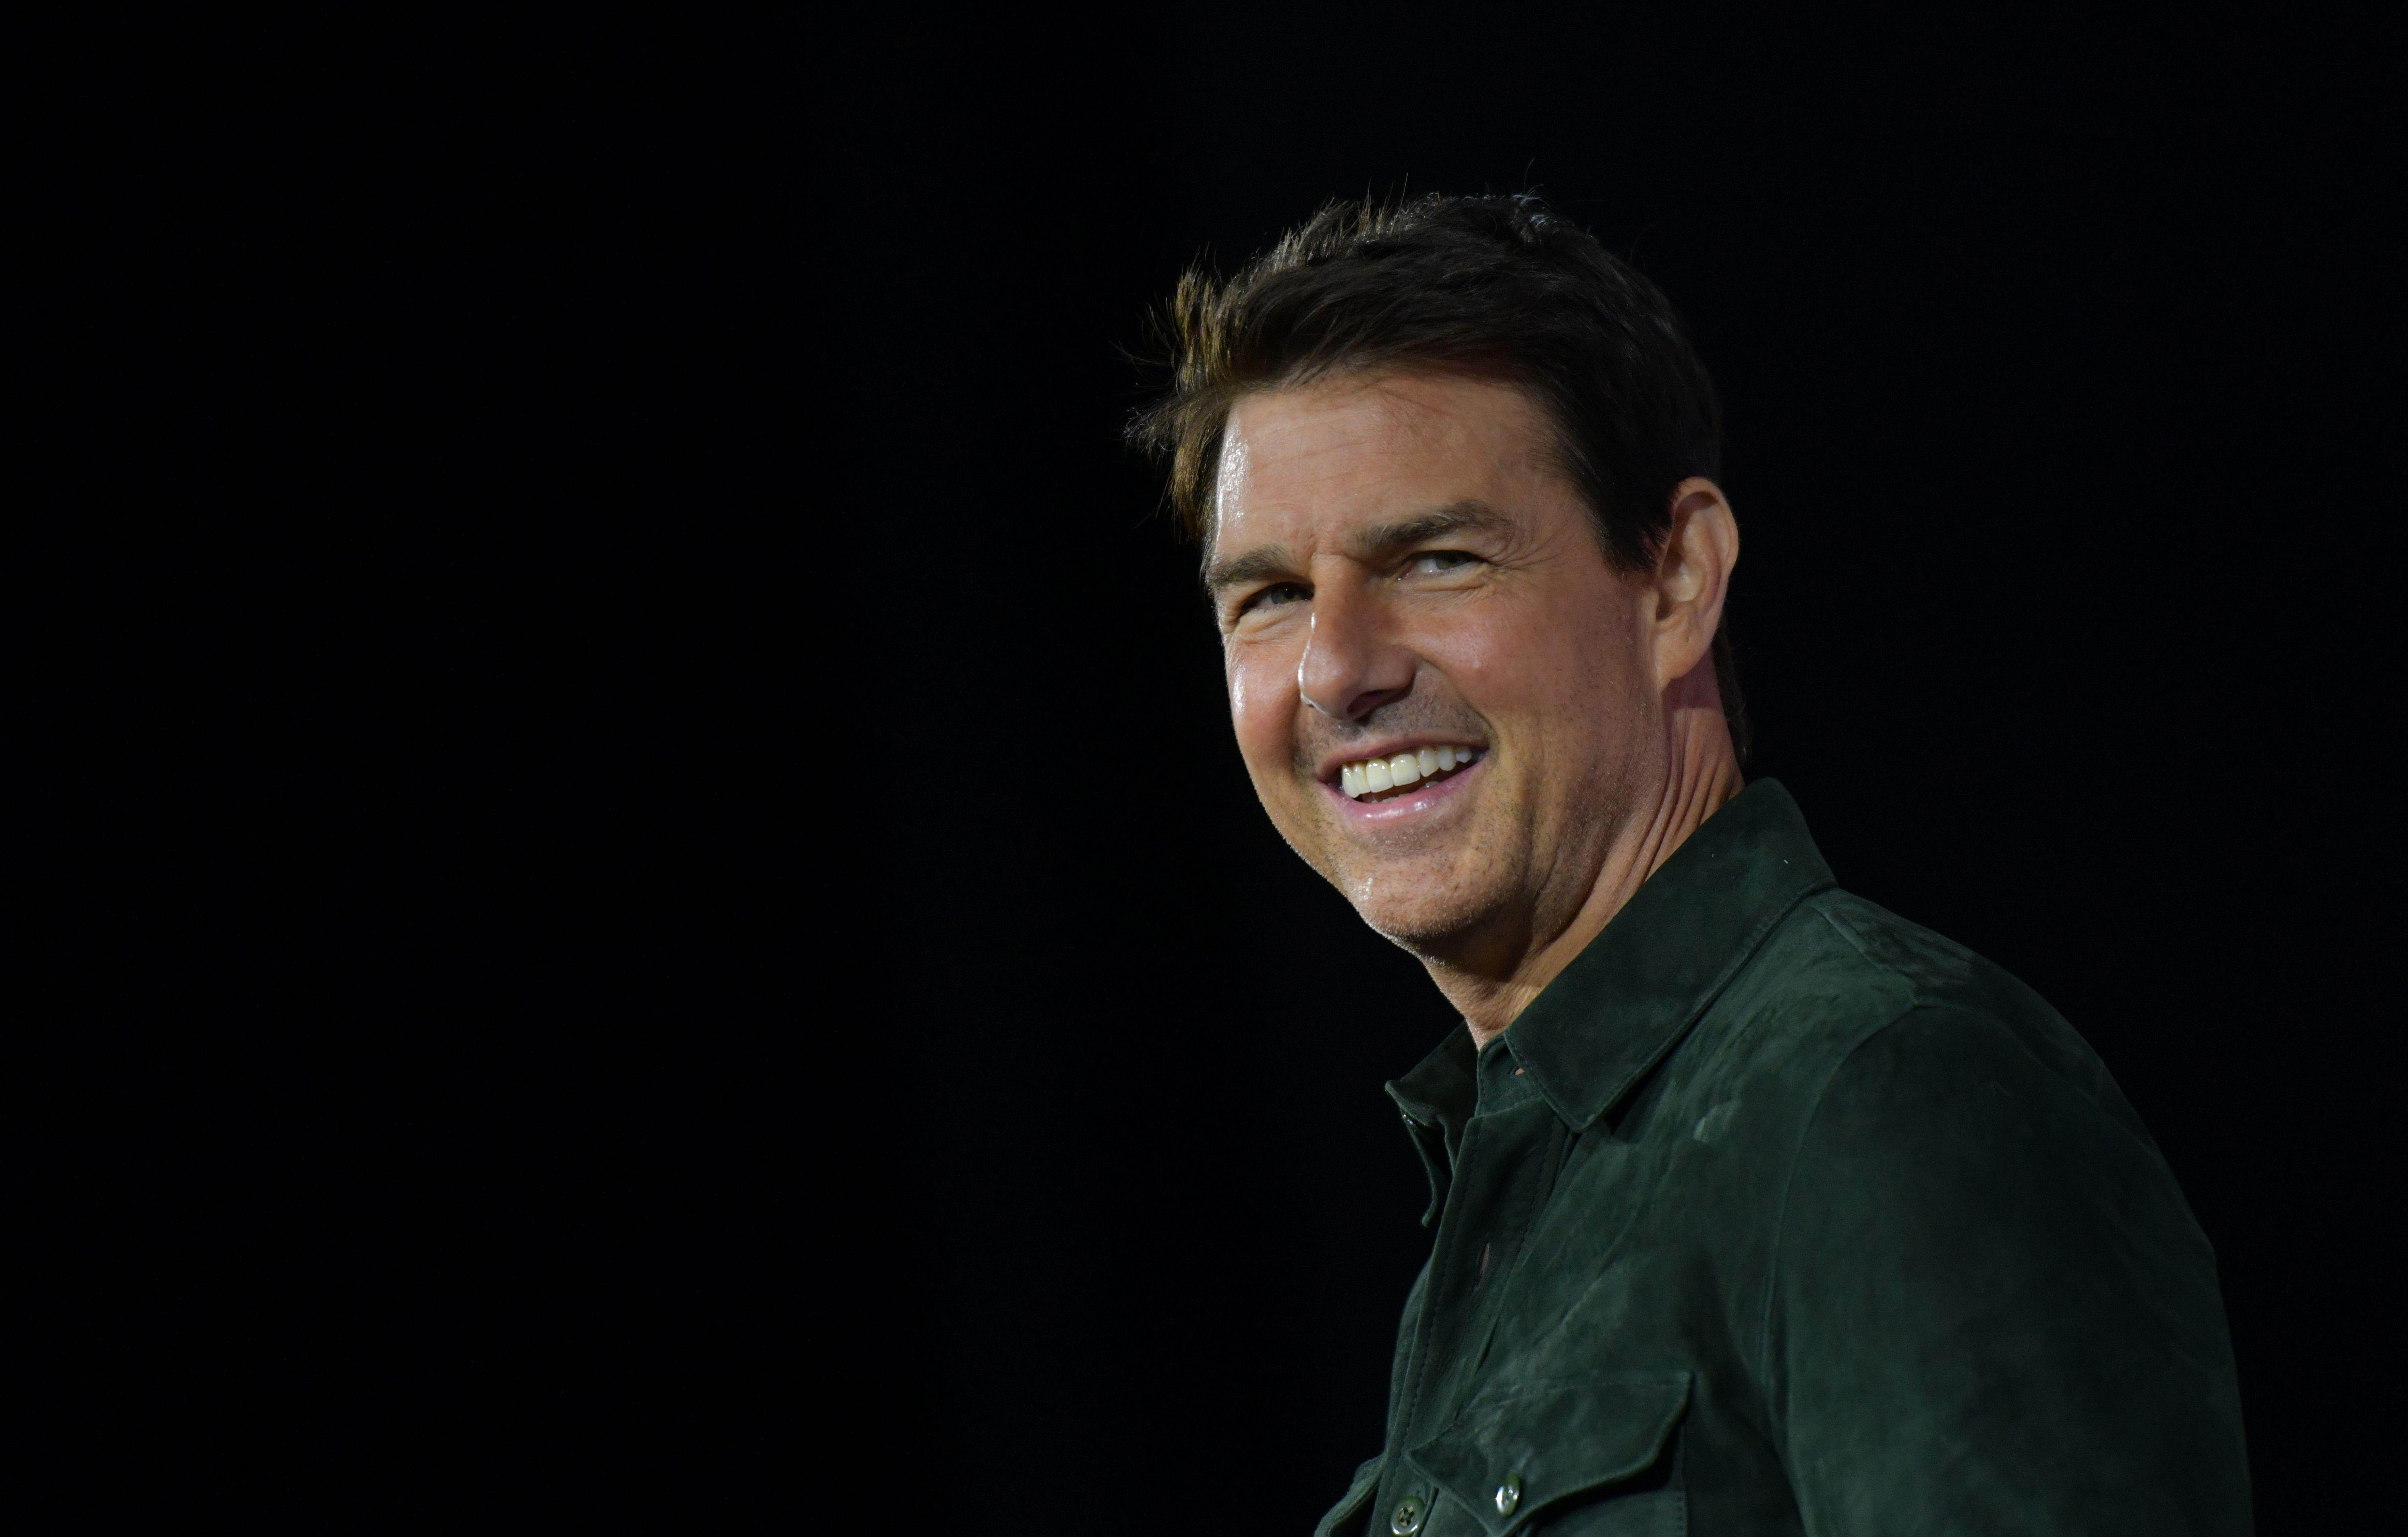 Kate Hudson says 'Mission: Impossible' star Tom Cruise scaled eight-foot gate to get into party